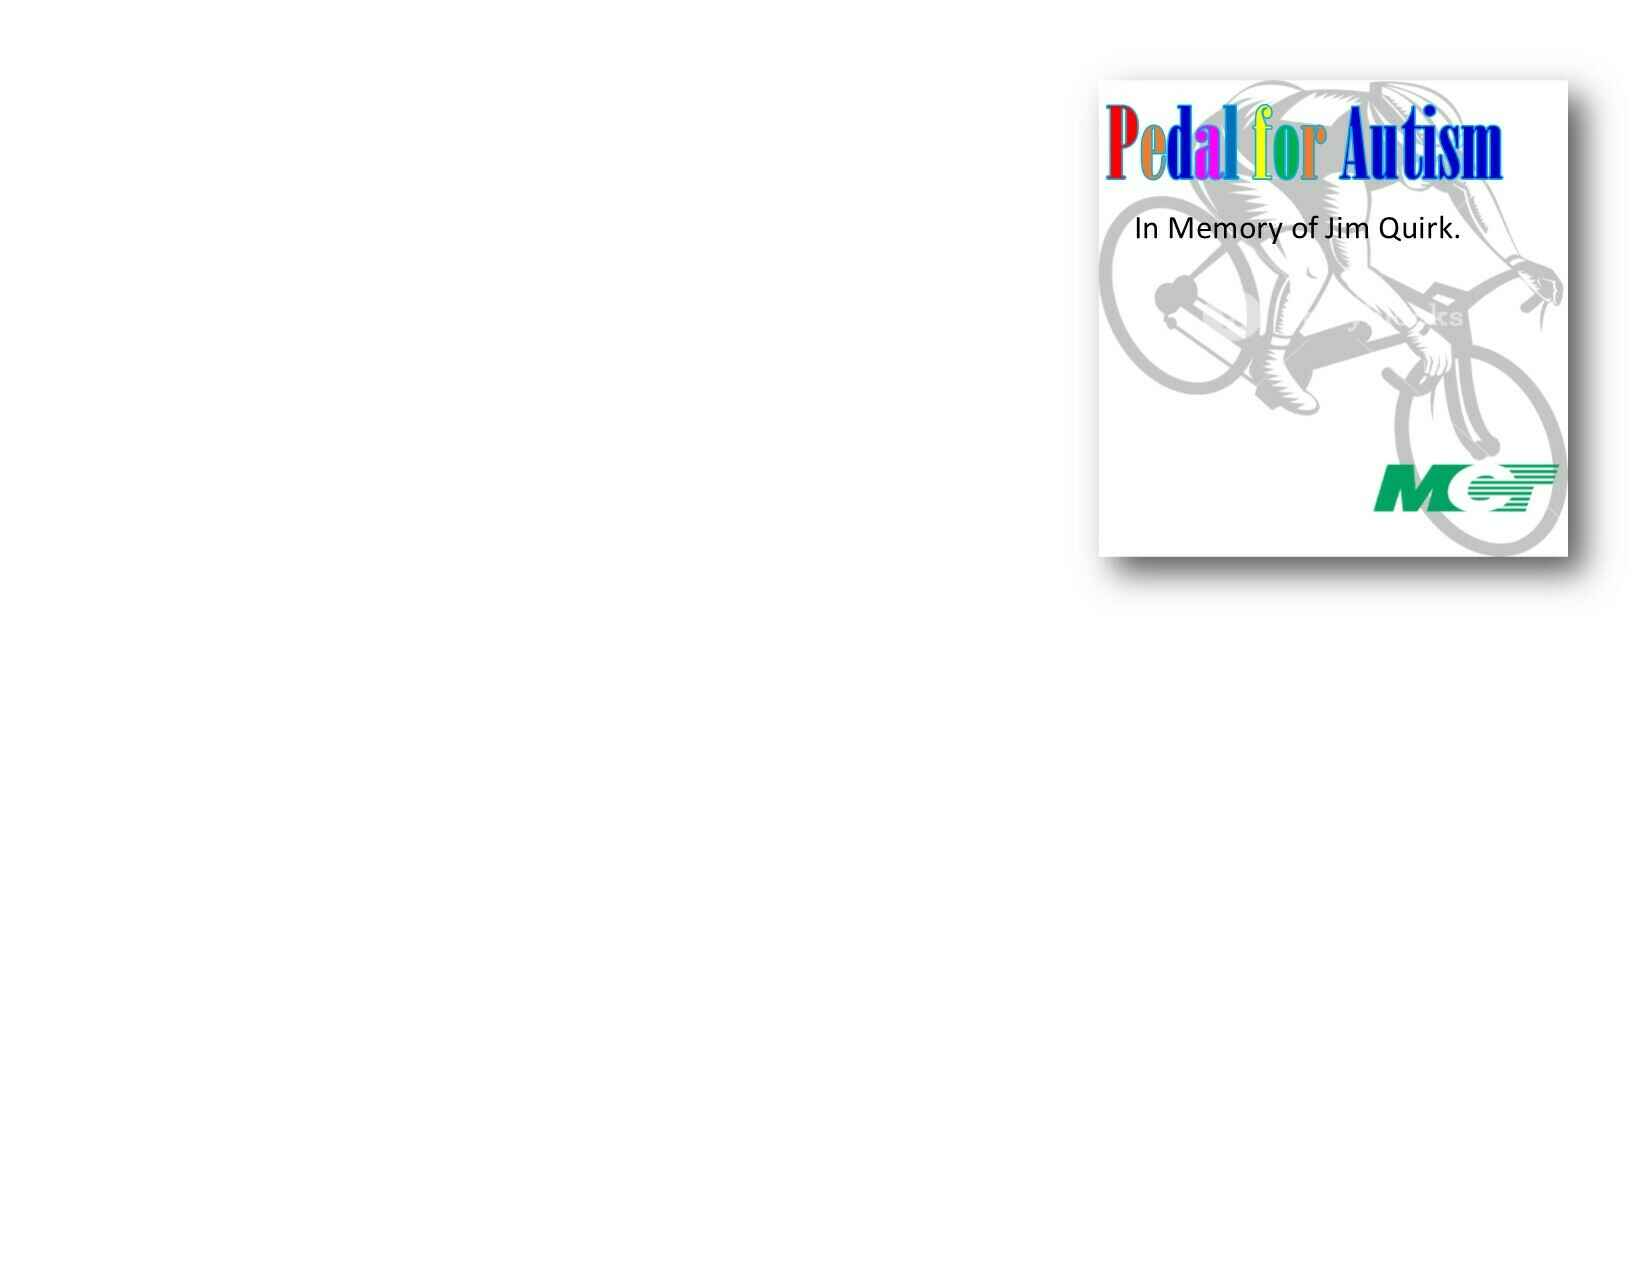 2021 Pedal For Autism Sponsorship image